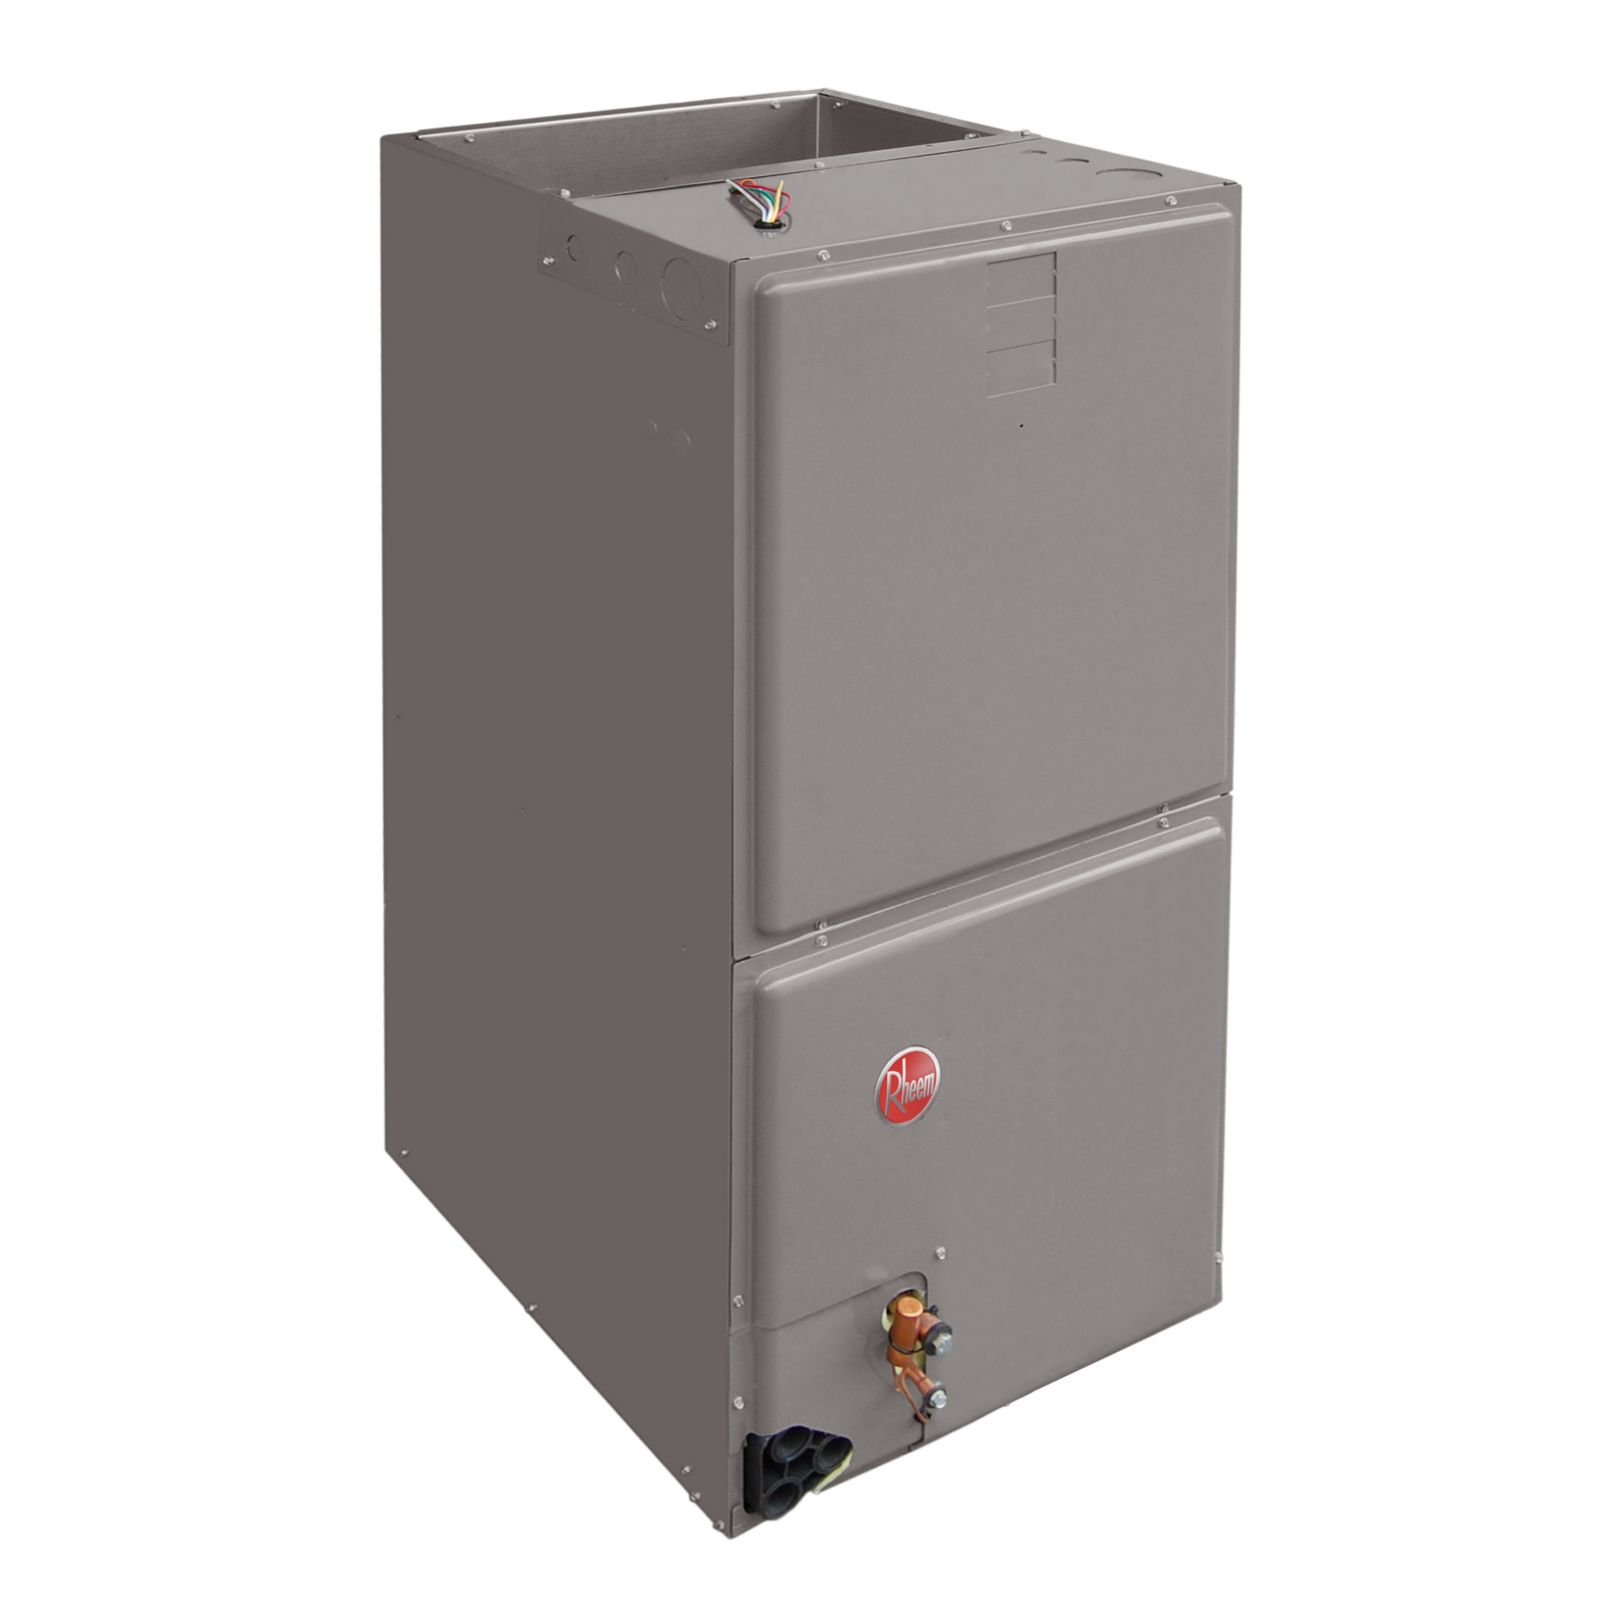 Rheem RH1V4821STANJA - RH1V - Series, 4 Ton, R-410A, Single Stage, Aluminum Air Handler, ECM Motor, 208/240V, 1 Ph, 60 Hz